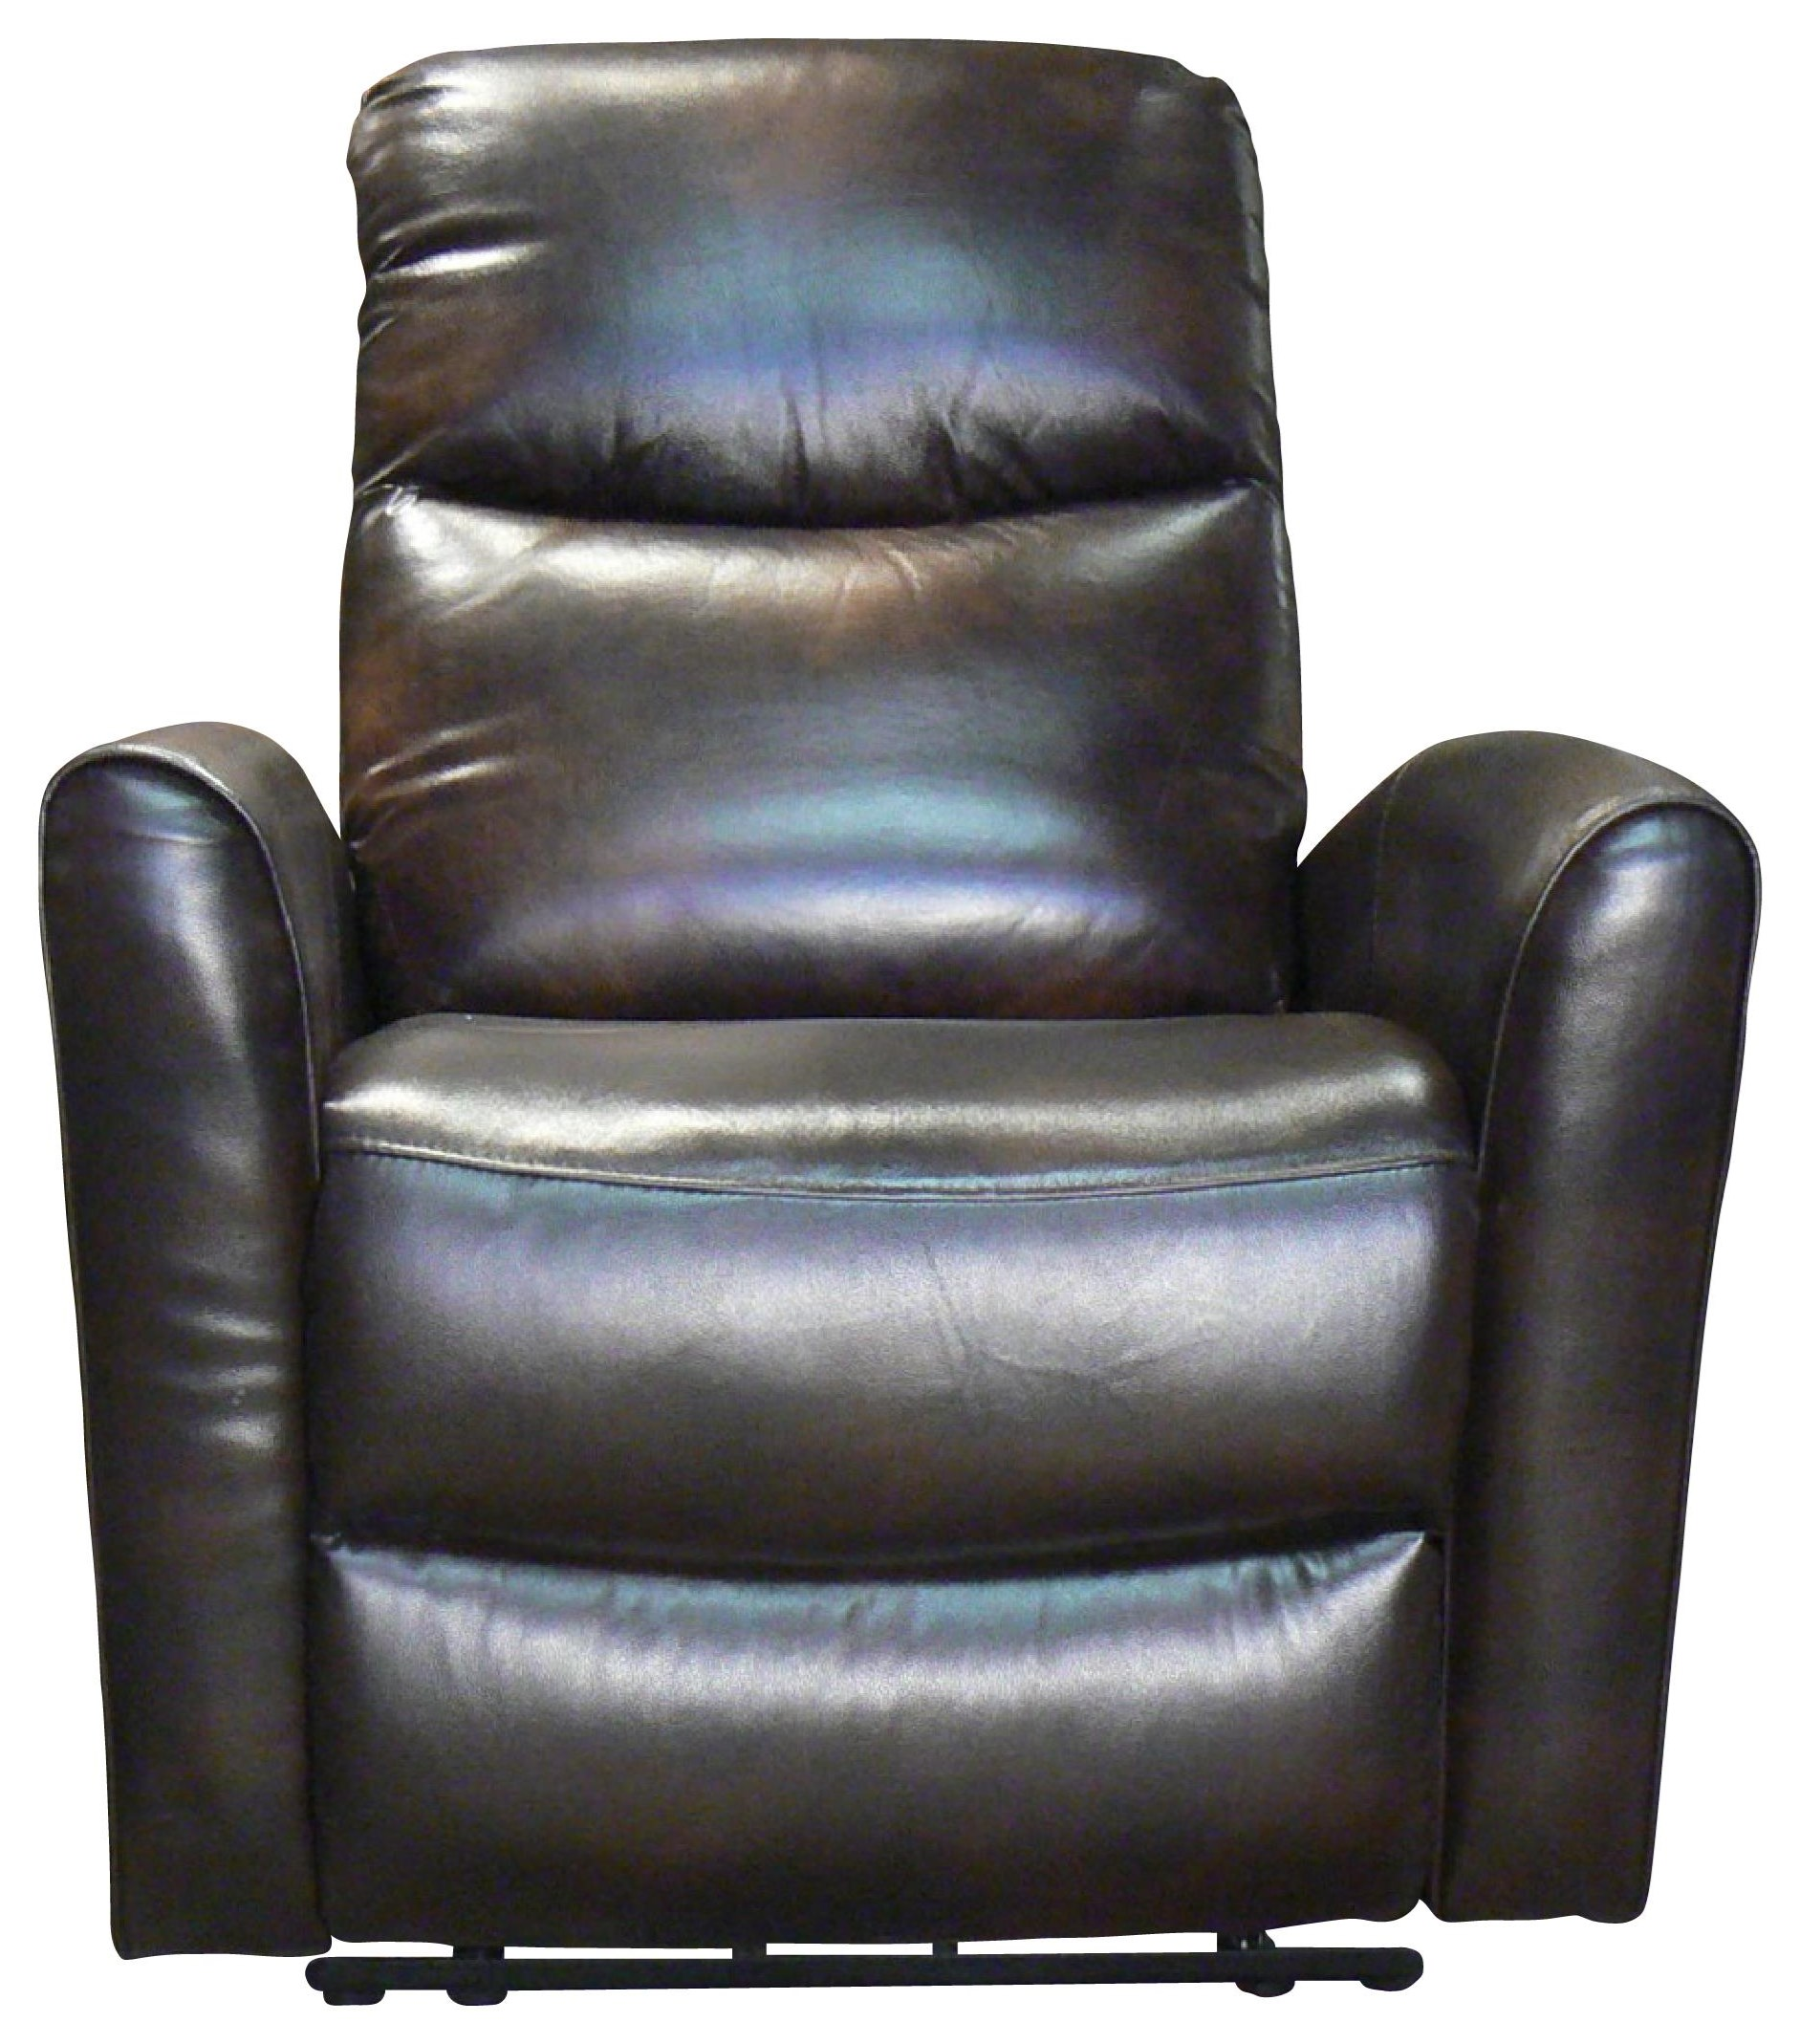 Abby Manual Glider Recliner by Benini Leather at Bennett's Furniture and Mattresses